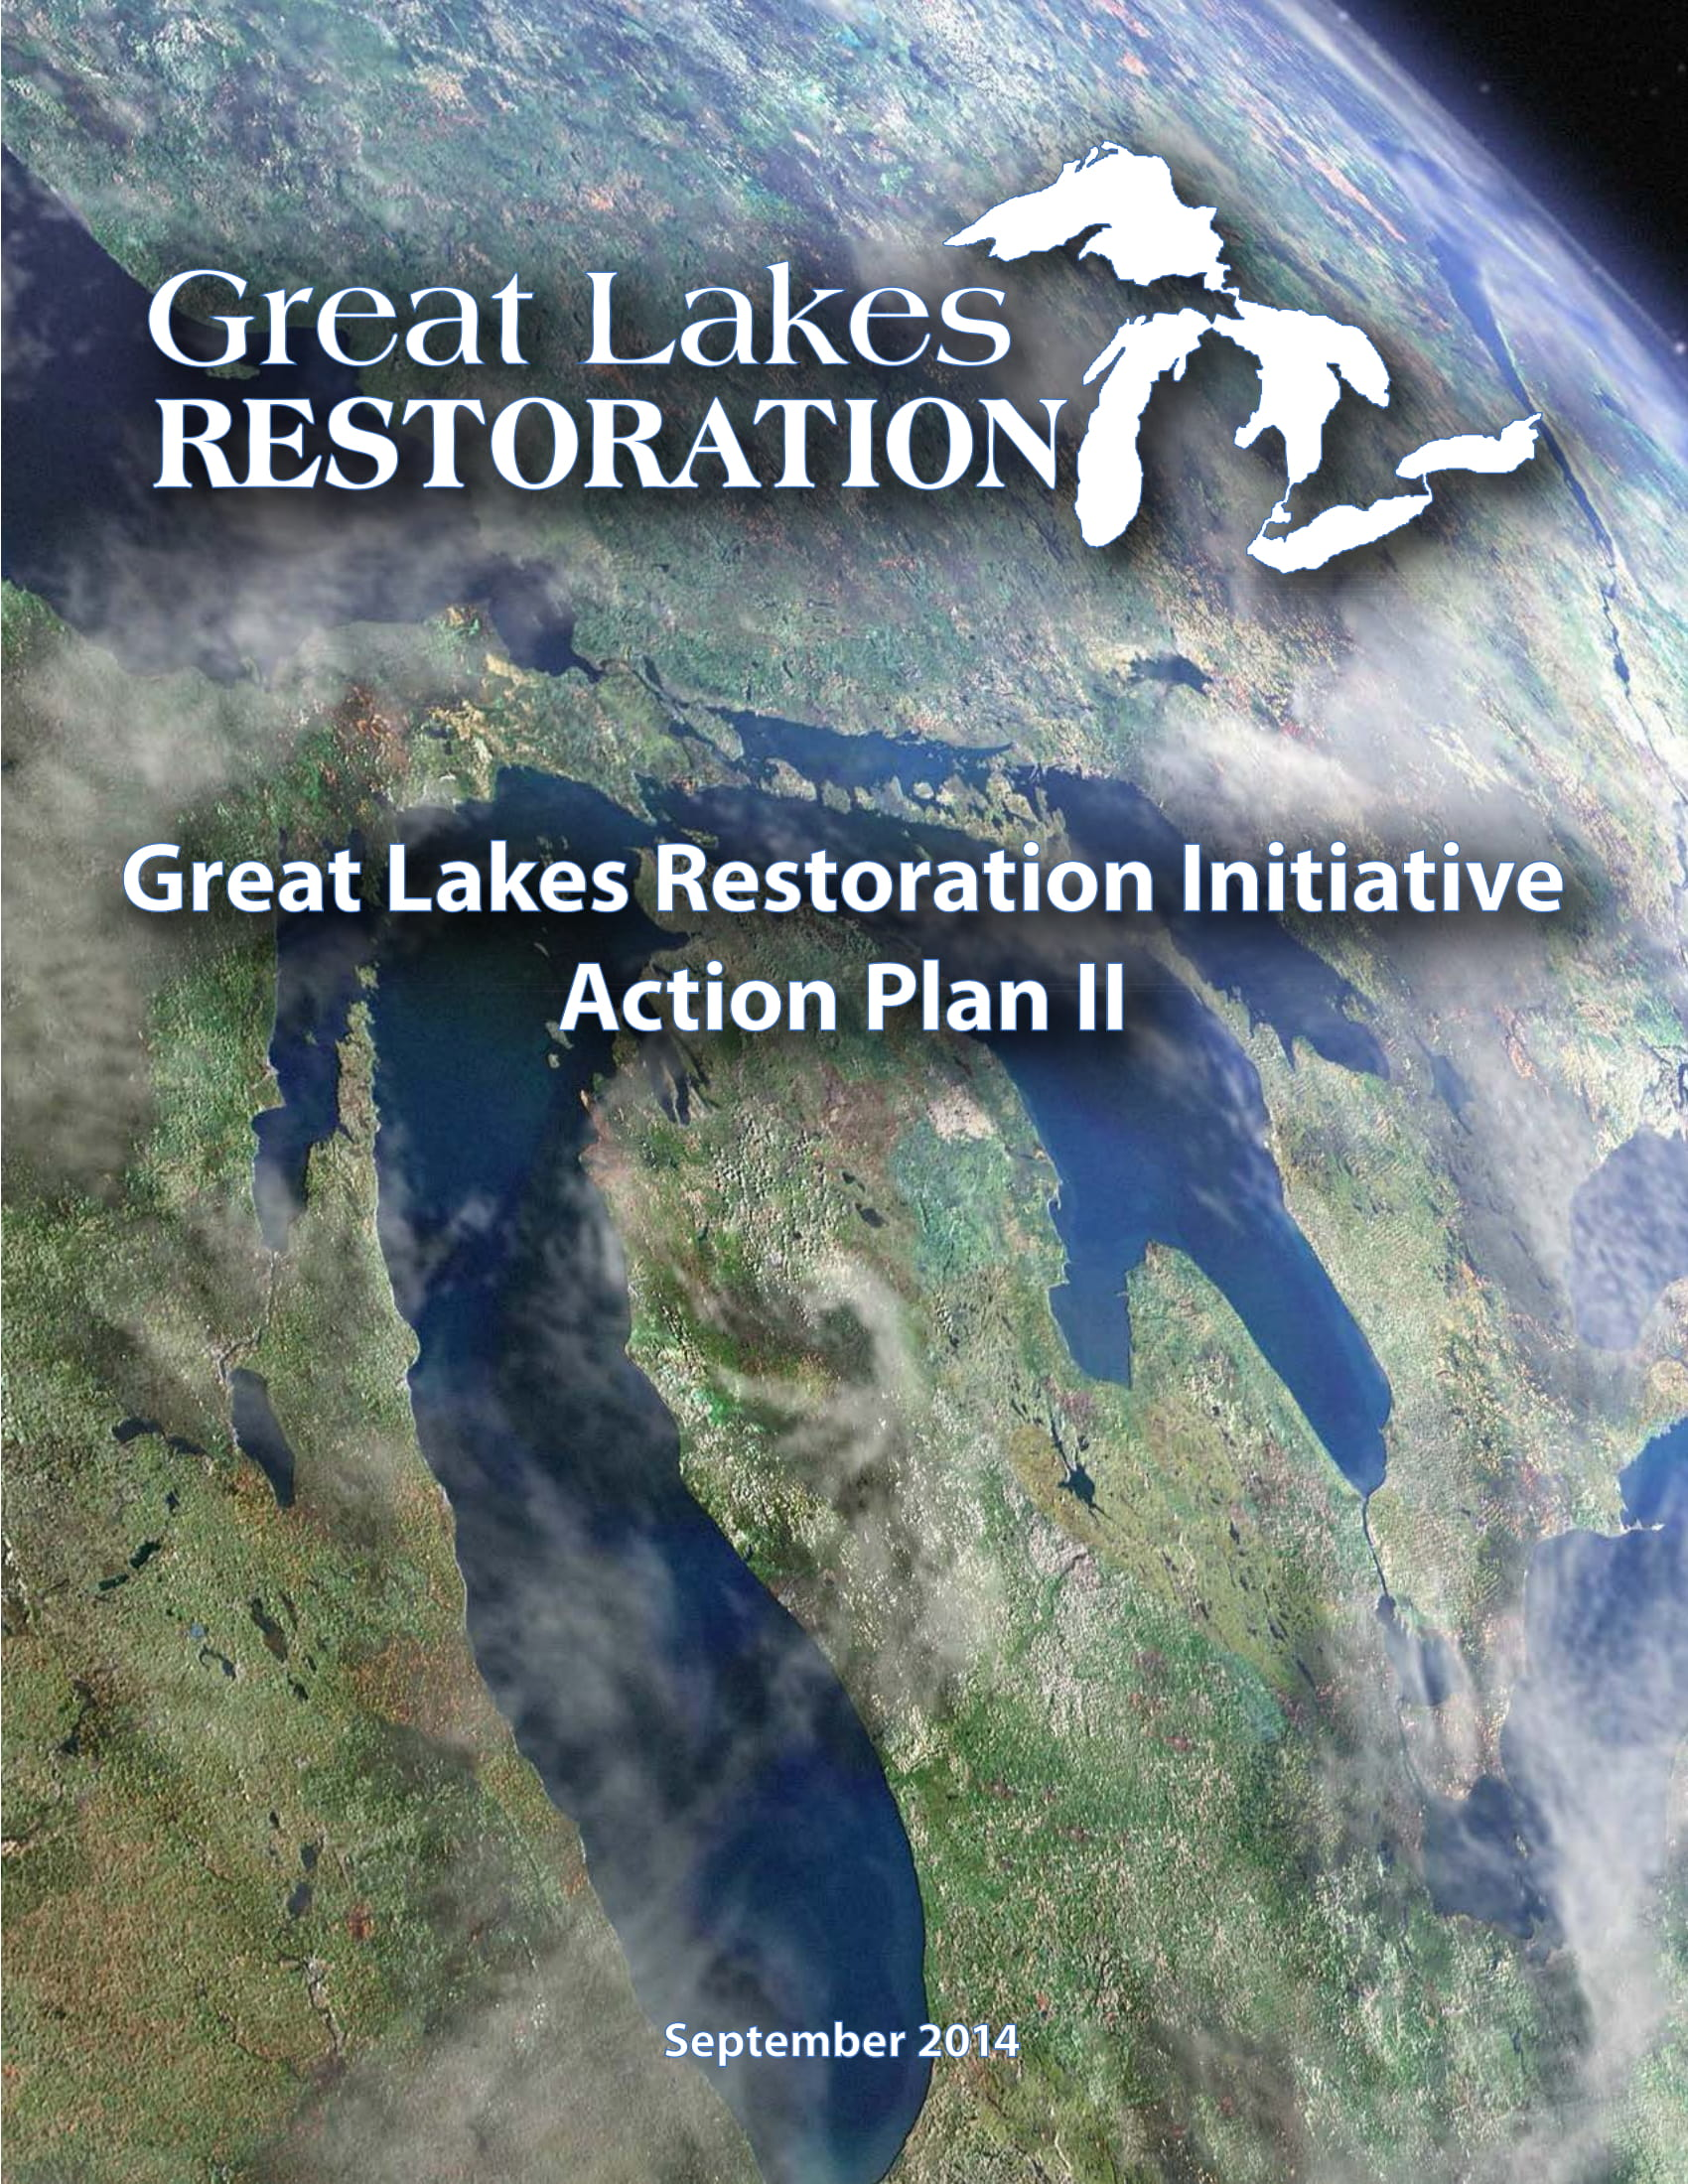 great lakes restoration initiative action plan example